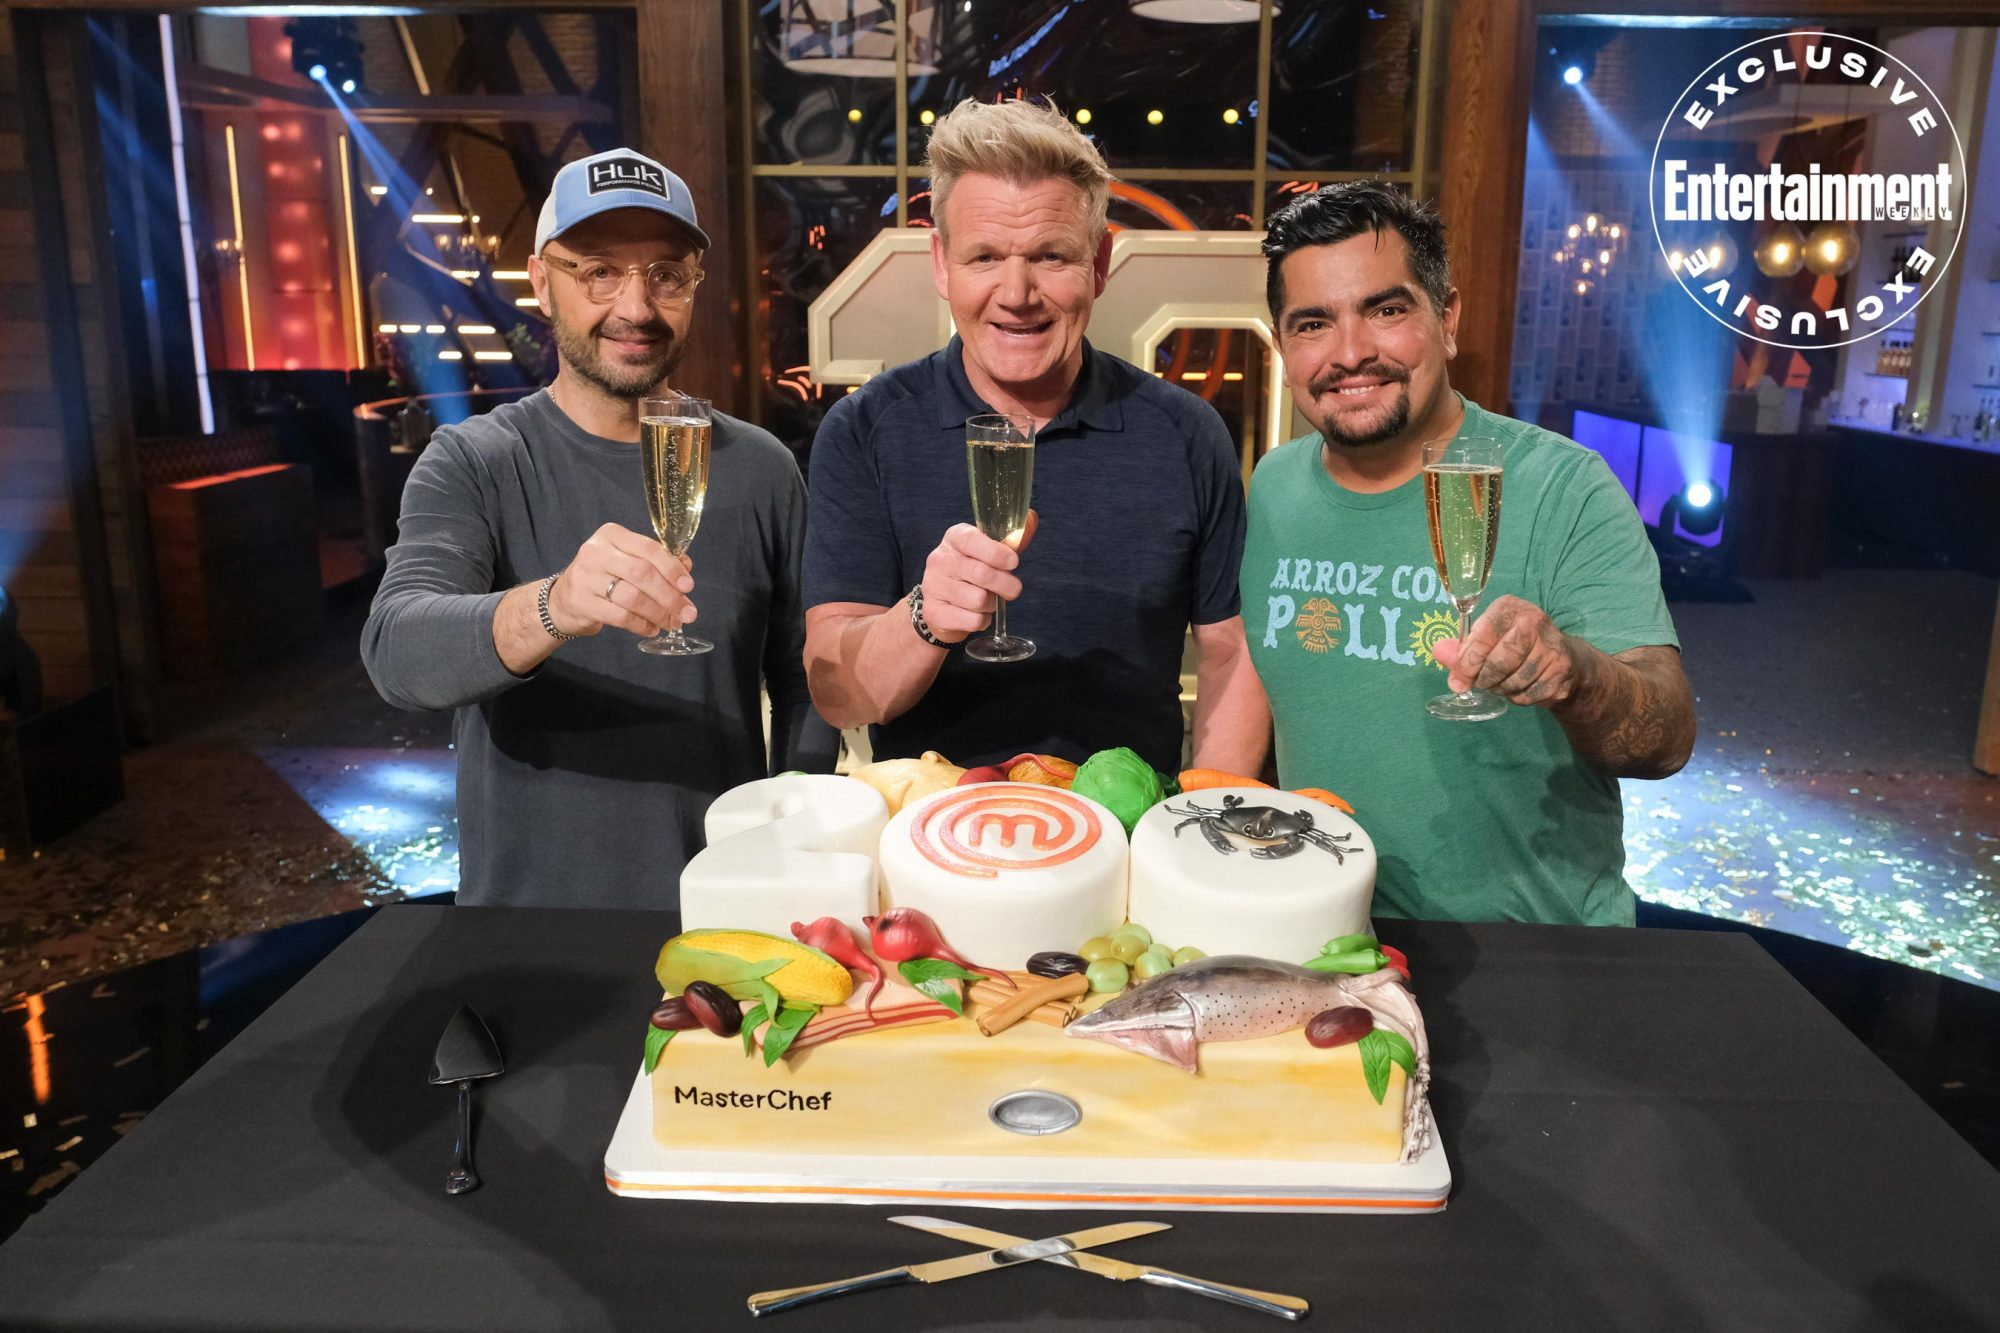 MasterChef 200th episode Joe Bastianich, Gordon Ramsay, andAaron Sanchez cutting cake